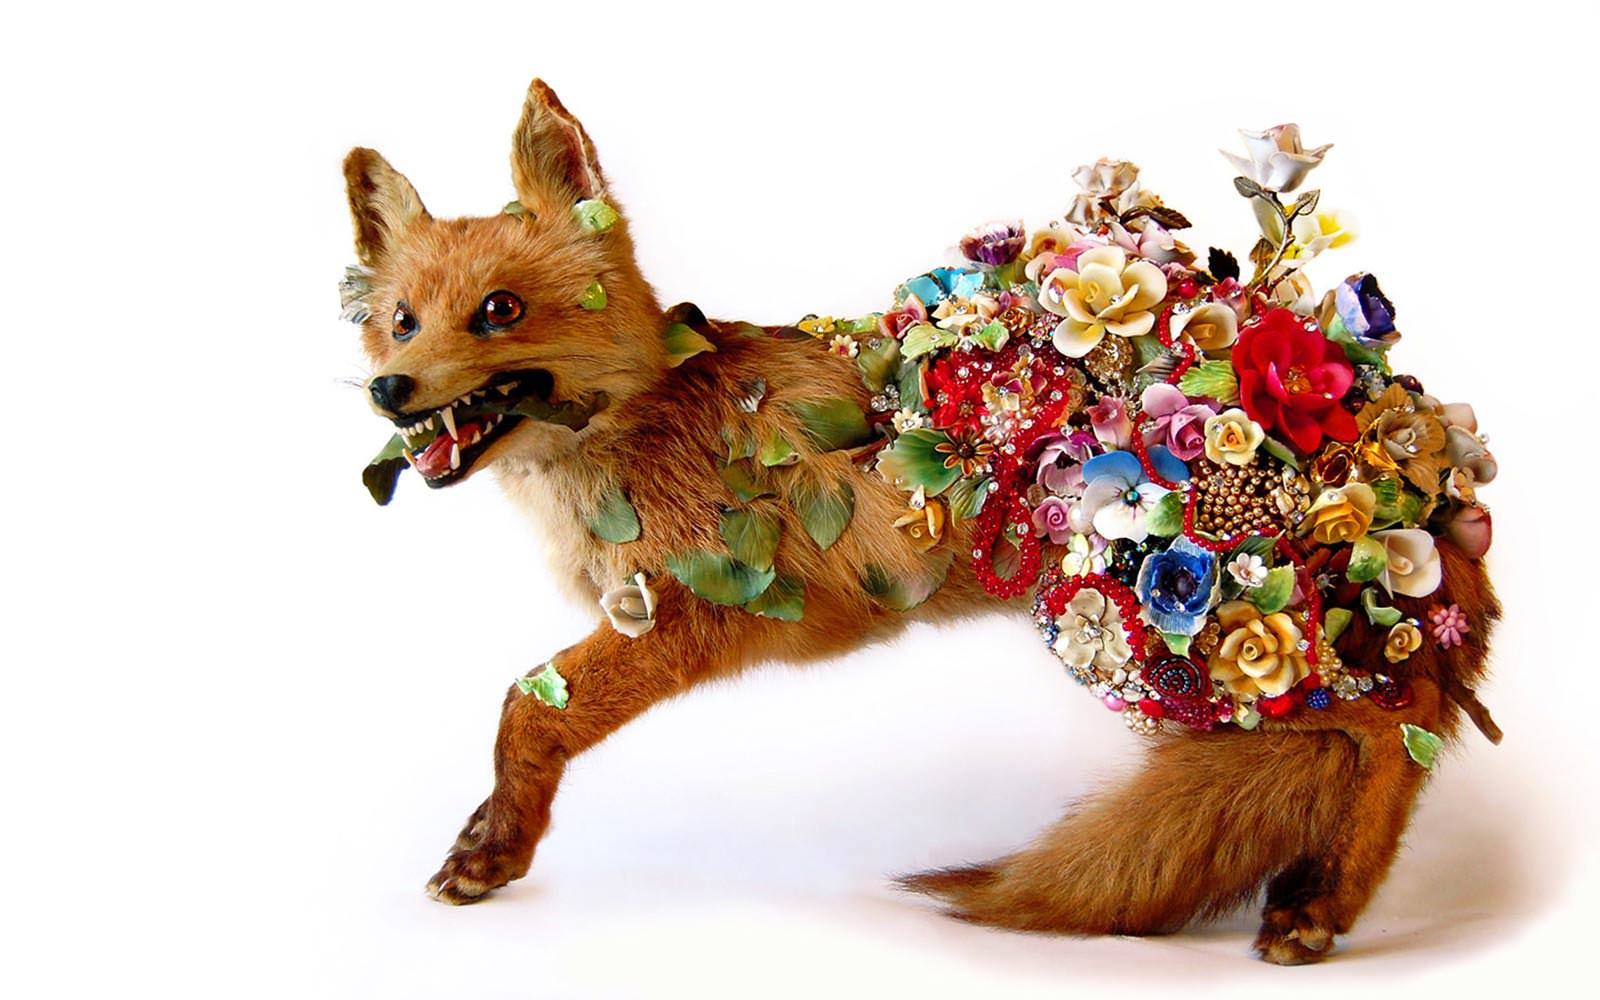 Angela Singer  Hedgerow , 2010 Recycled vintage taxidermy red fox, jewels, gems, mixed media 420 x 690 x 240 mm  _______